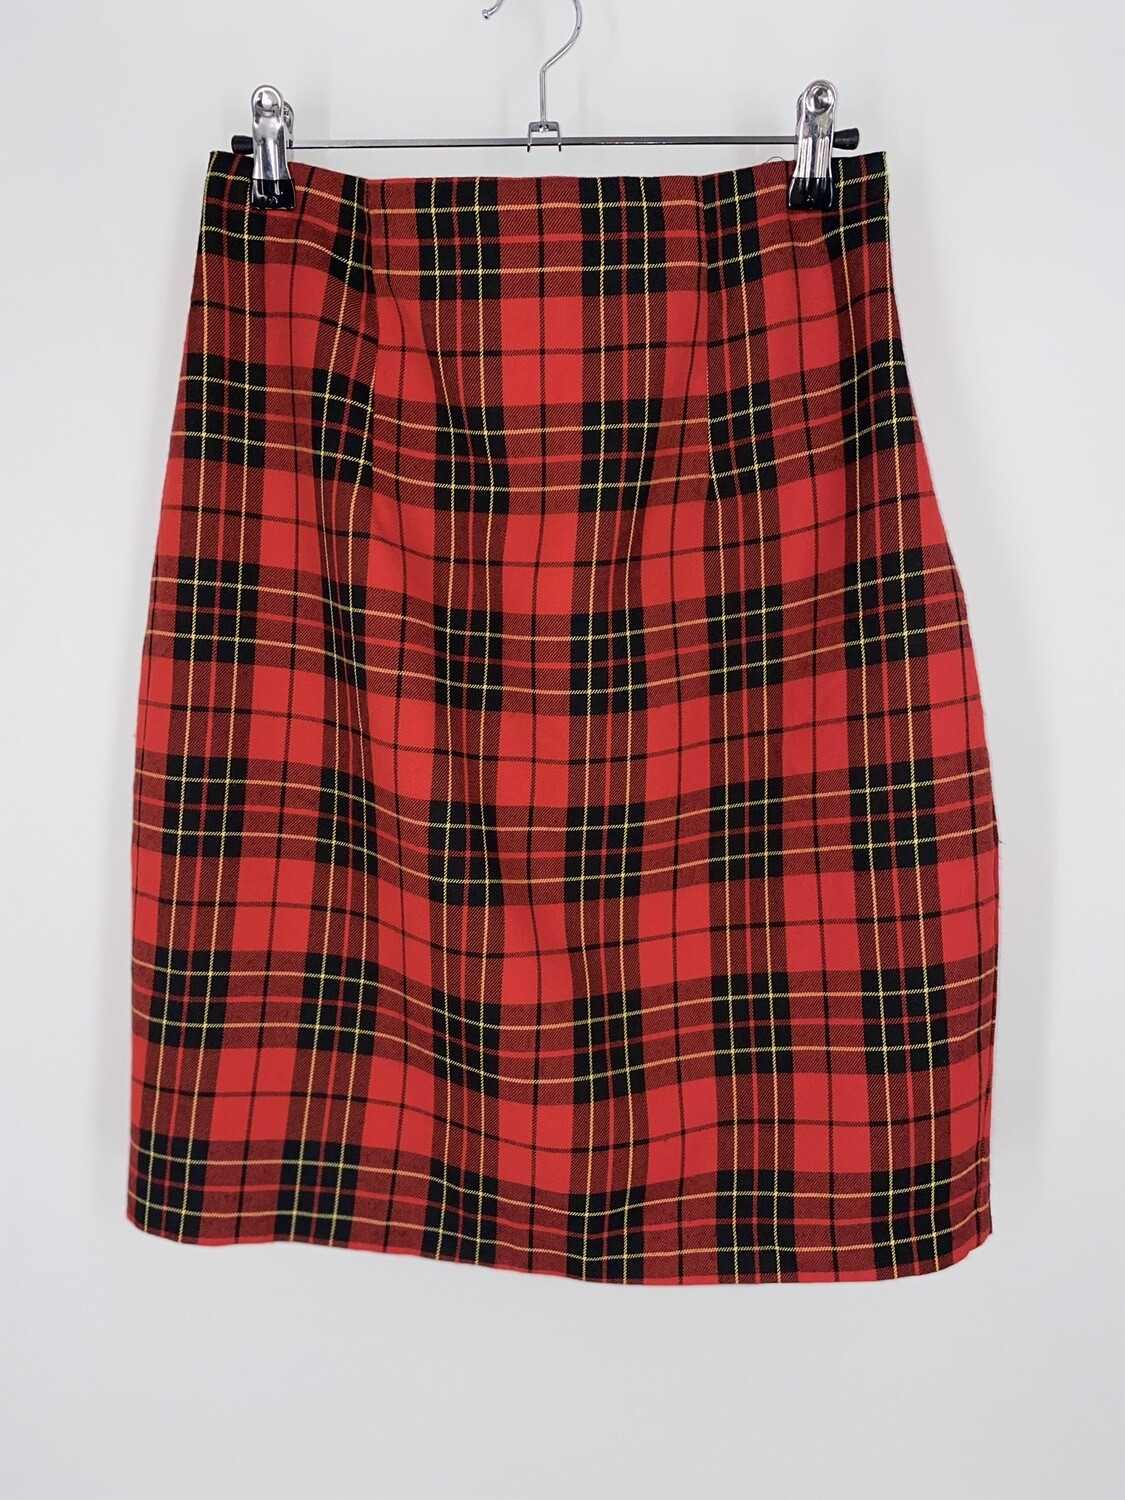 Red Plaid Pencil Skirt Size M